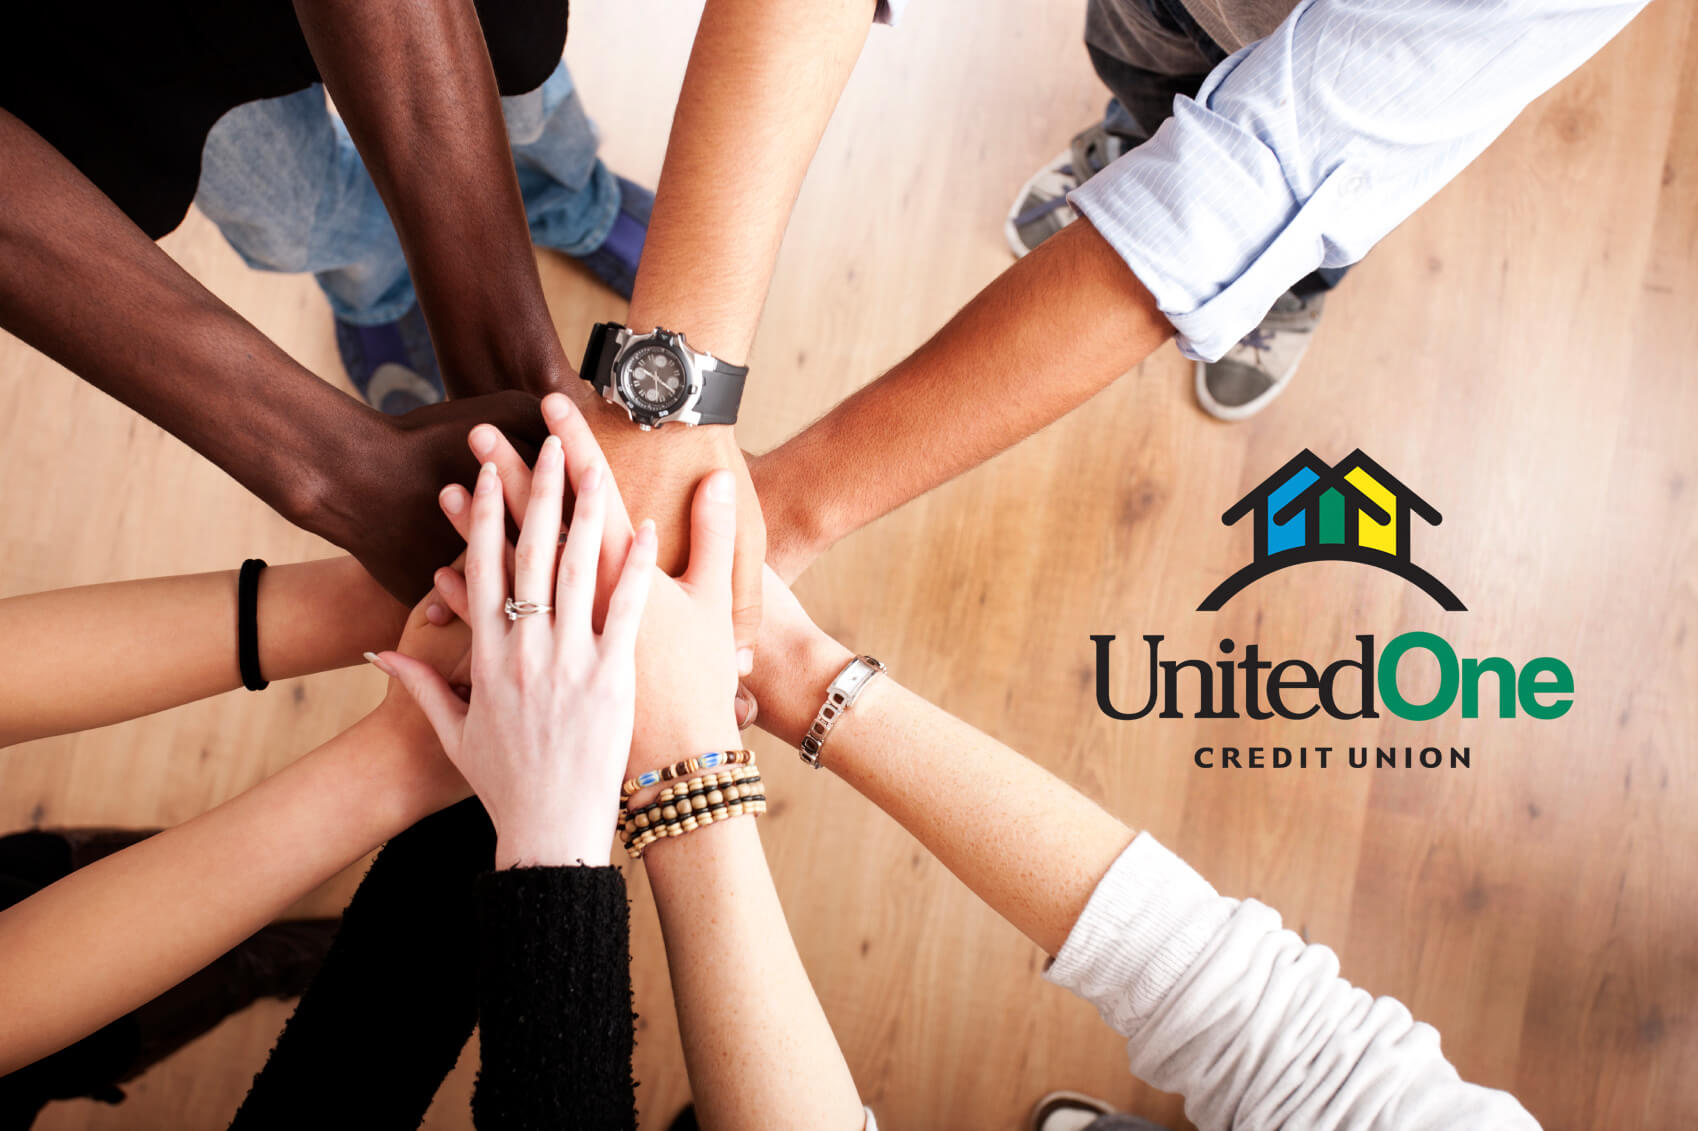 Group of people's hands as they huddle in a circle with UnitedOne Credit Union logo on the right.